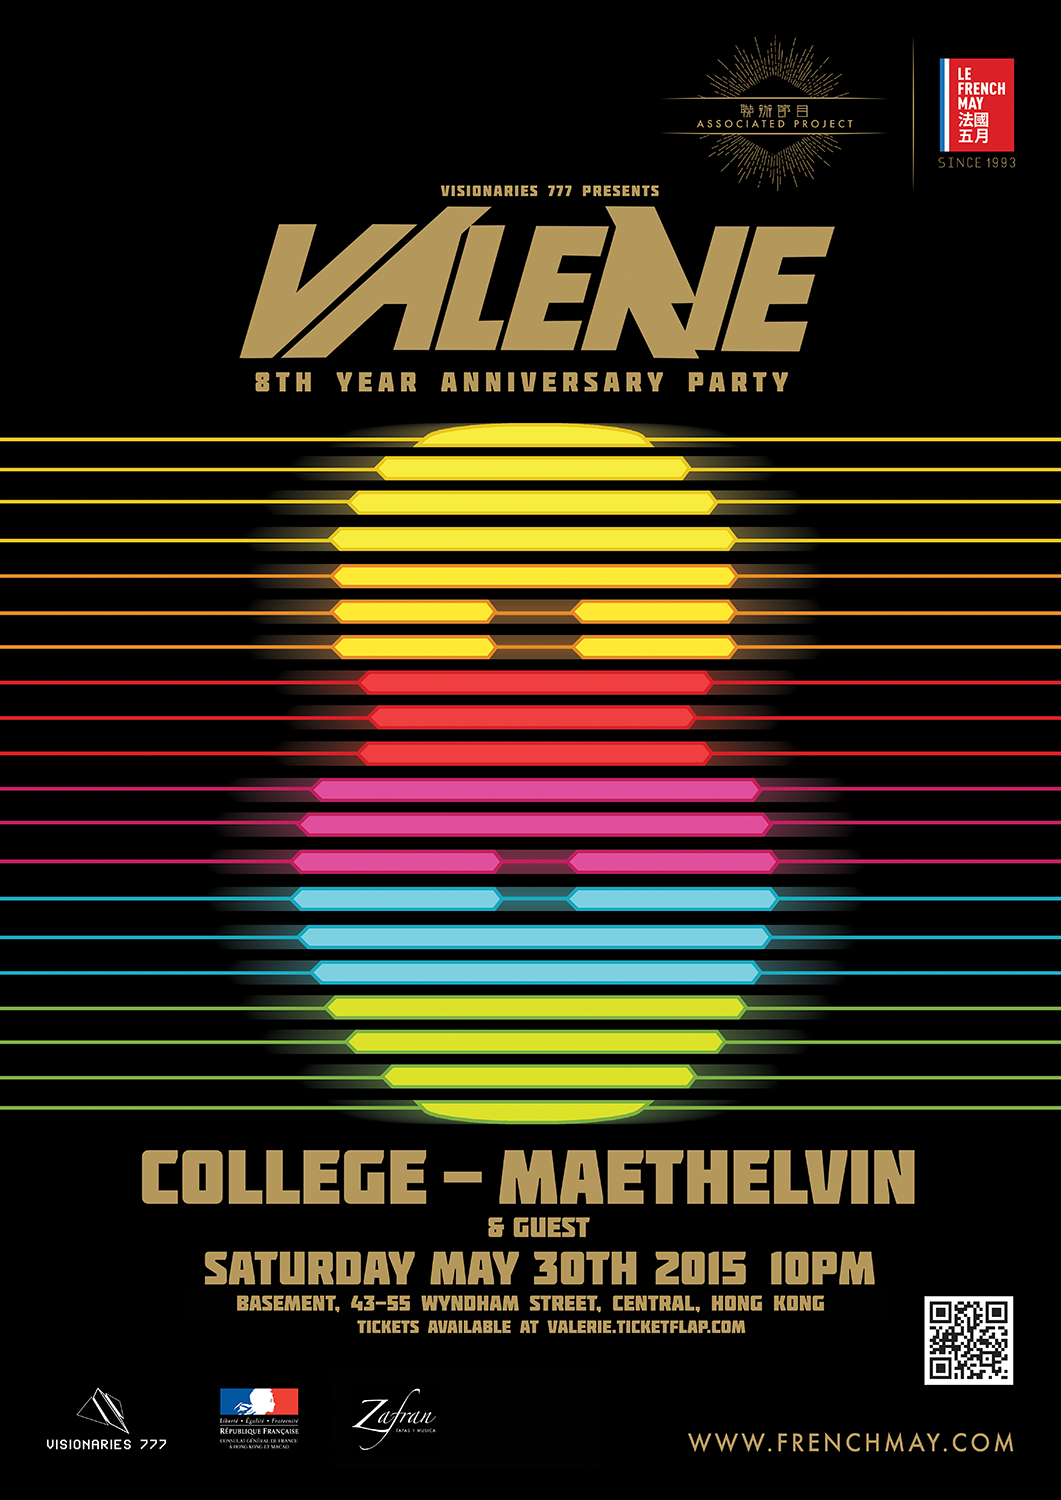 valerie 8th year anniversary party tickets may 30 2015 ticketflap